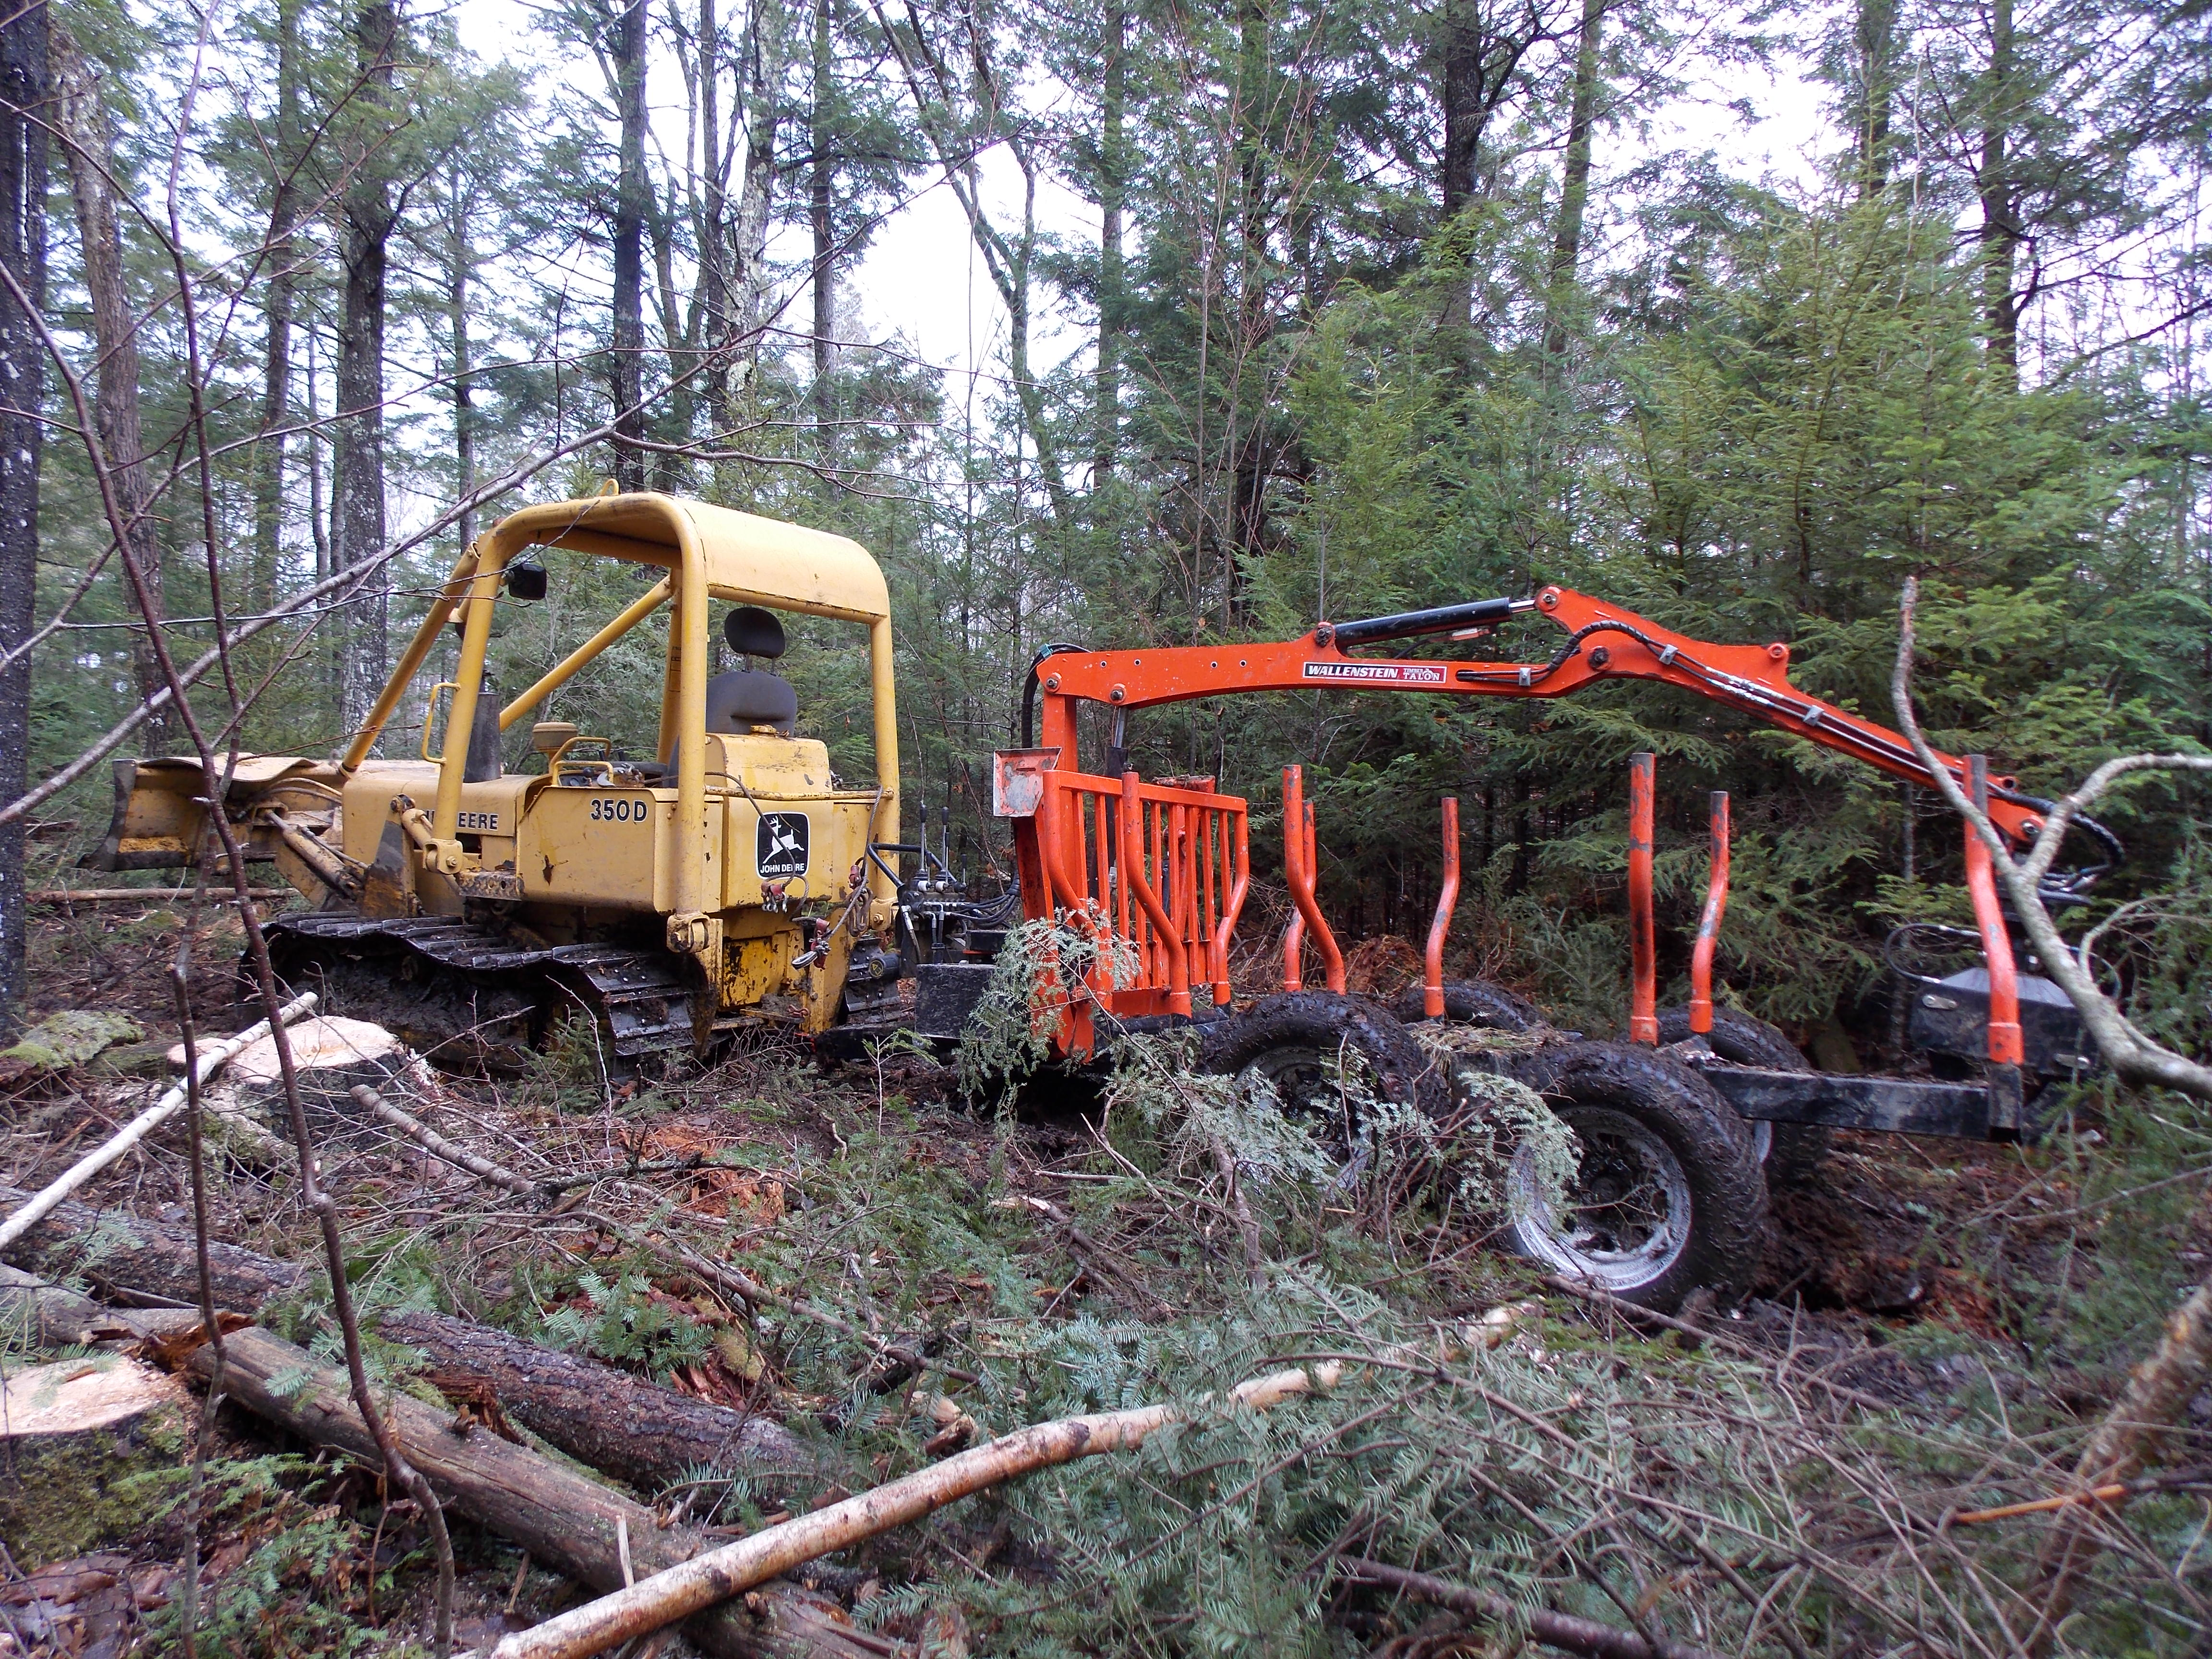 Soil compaction due to Bobcat? (forest garden forum at permies)